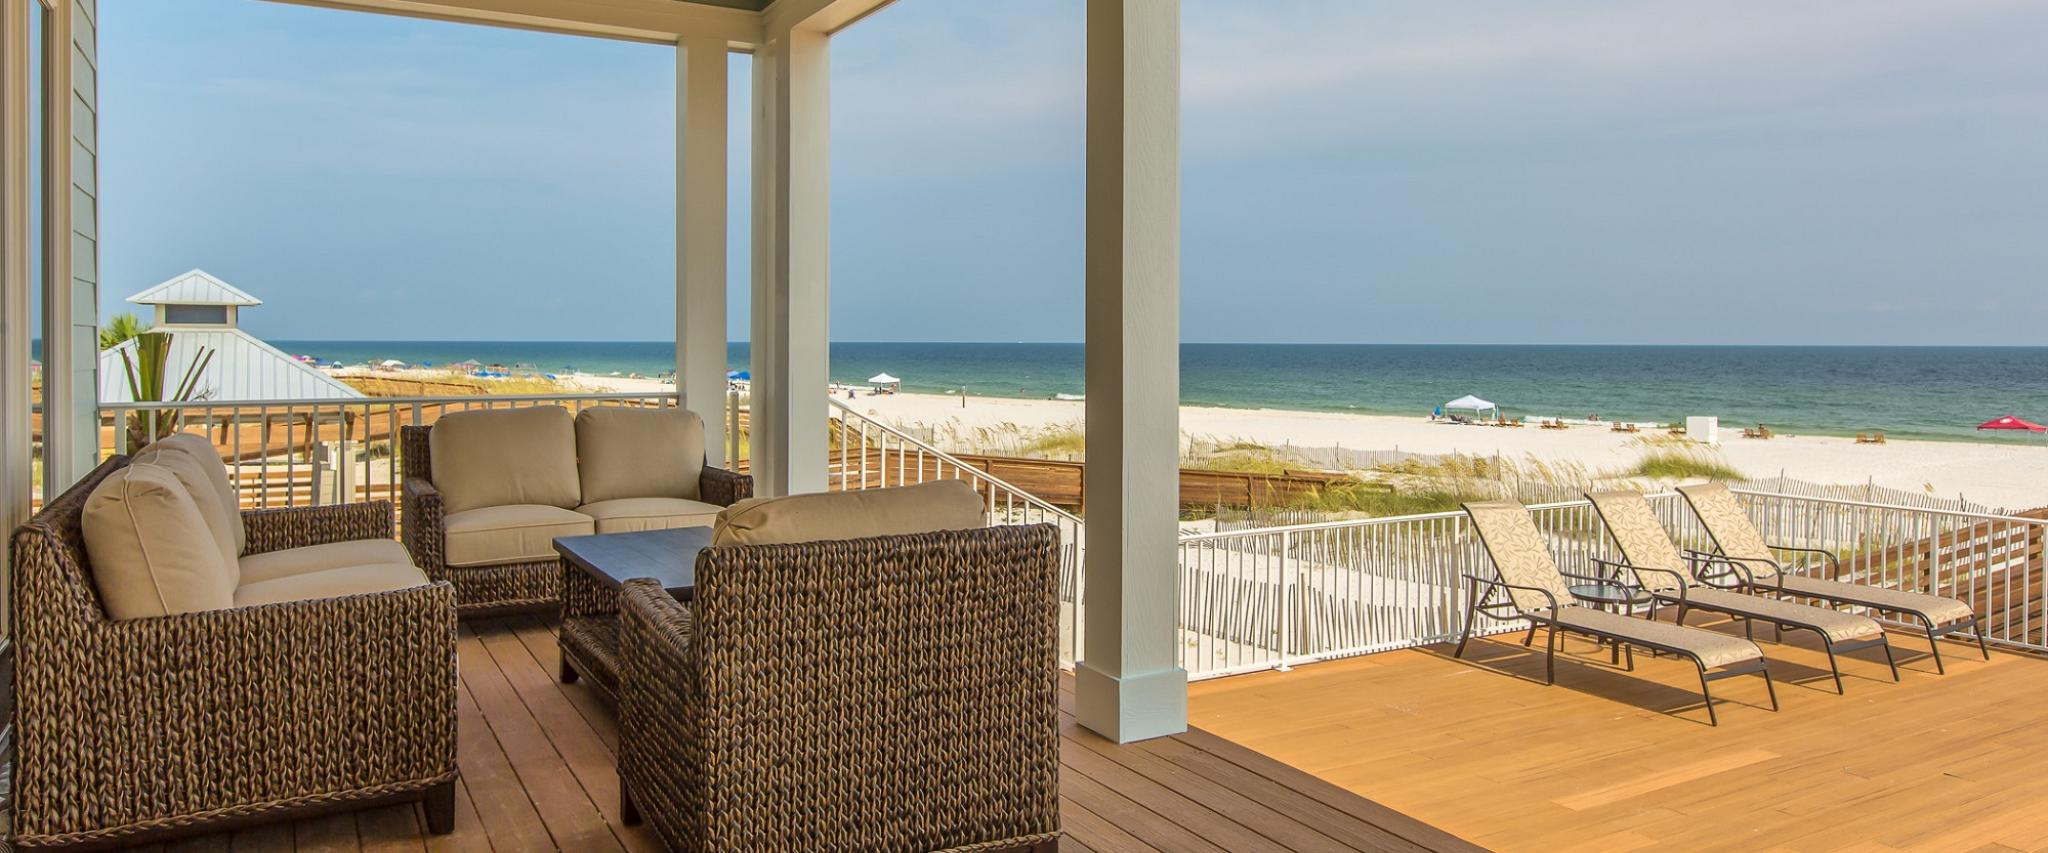 Top 150+ Vacation Rentals | Gulf Shores & Orange Beach (2020)